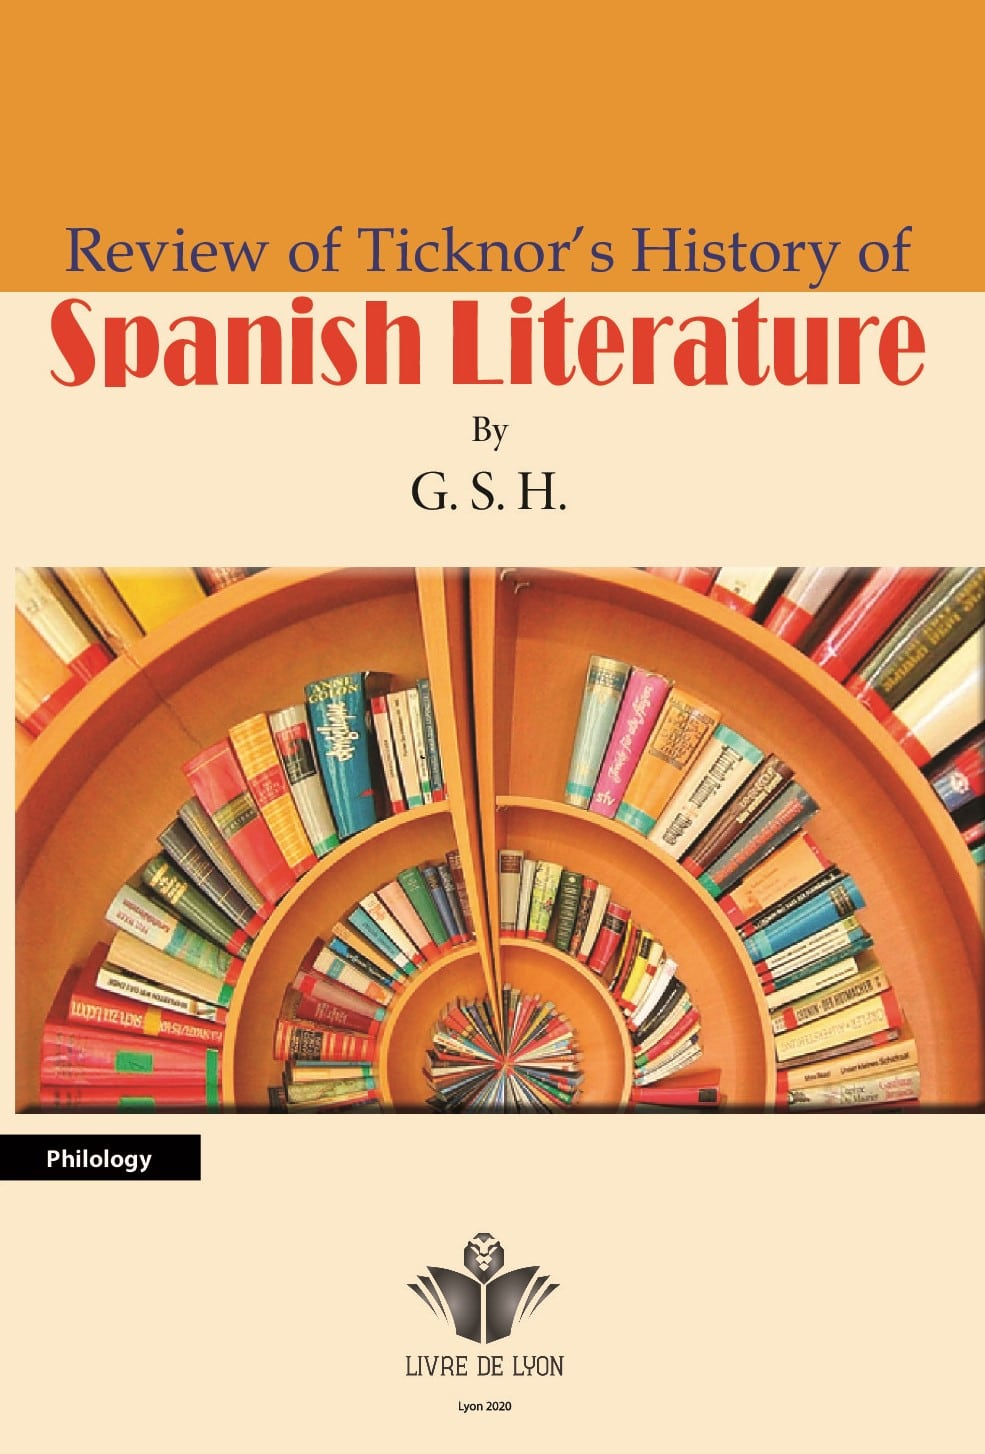 Review of Ticknor s History of Spanish Literature